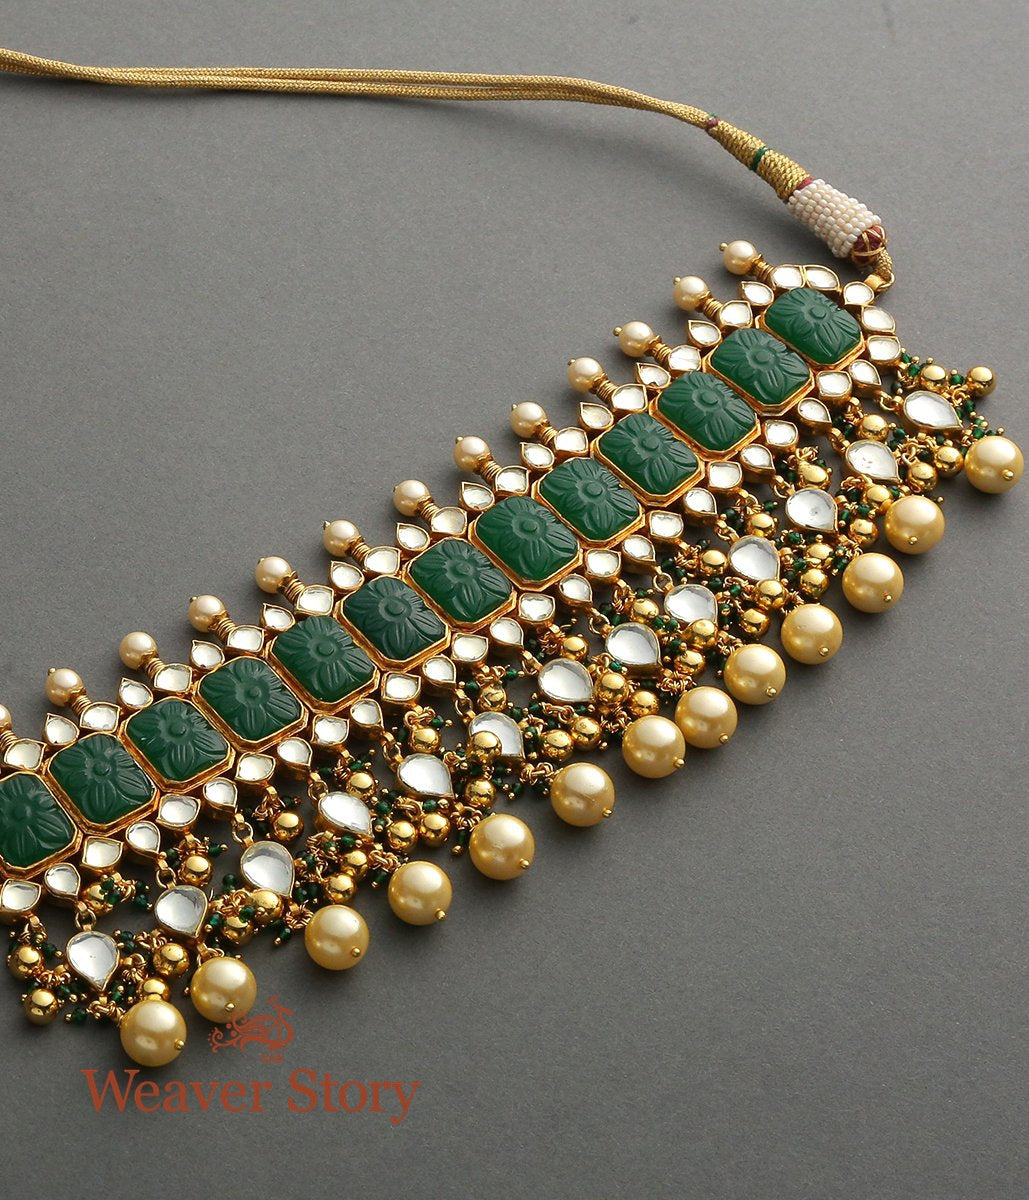 Kundan Necklace with Carved Emeralds